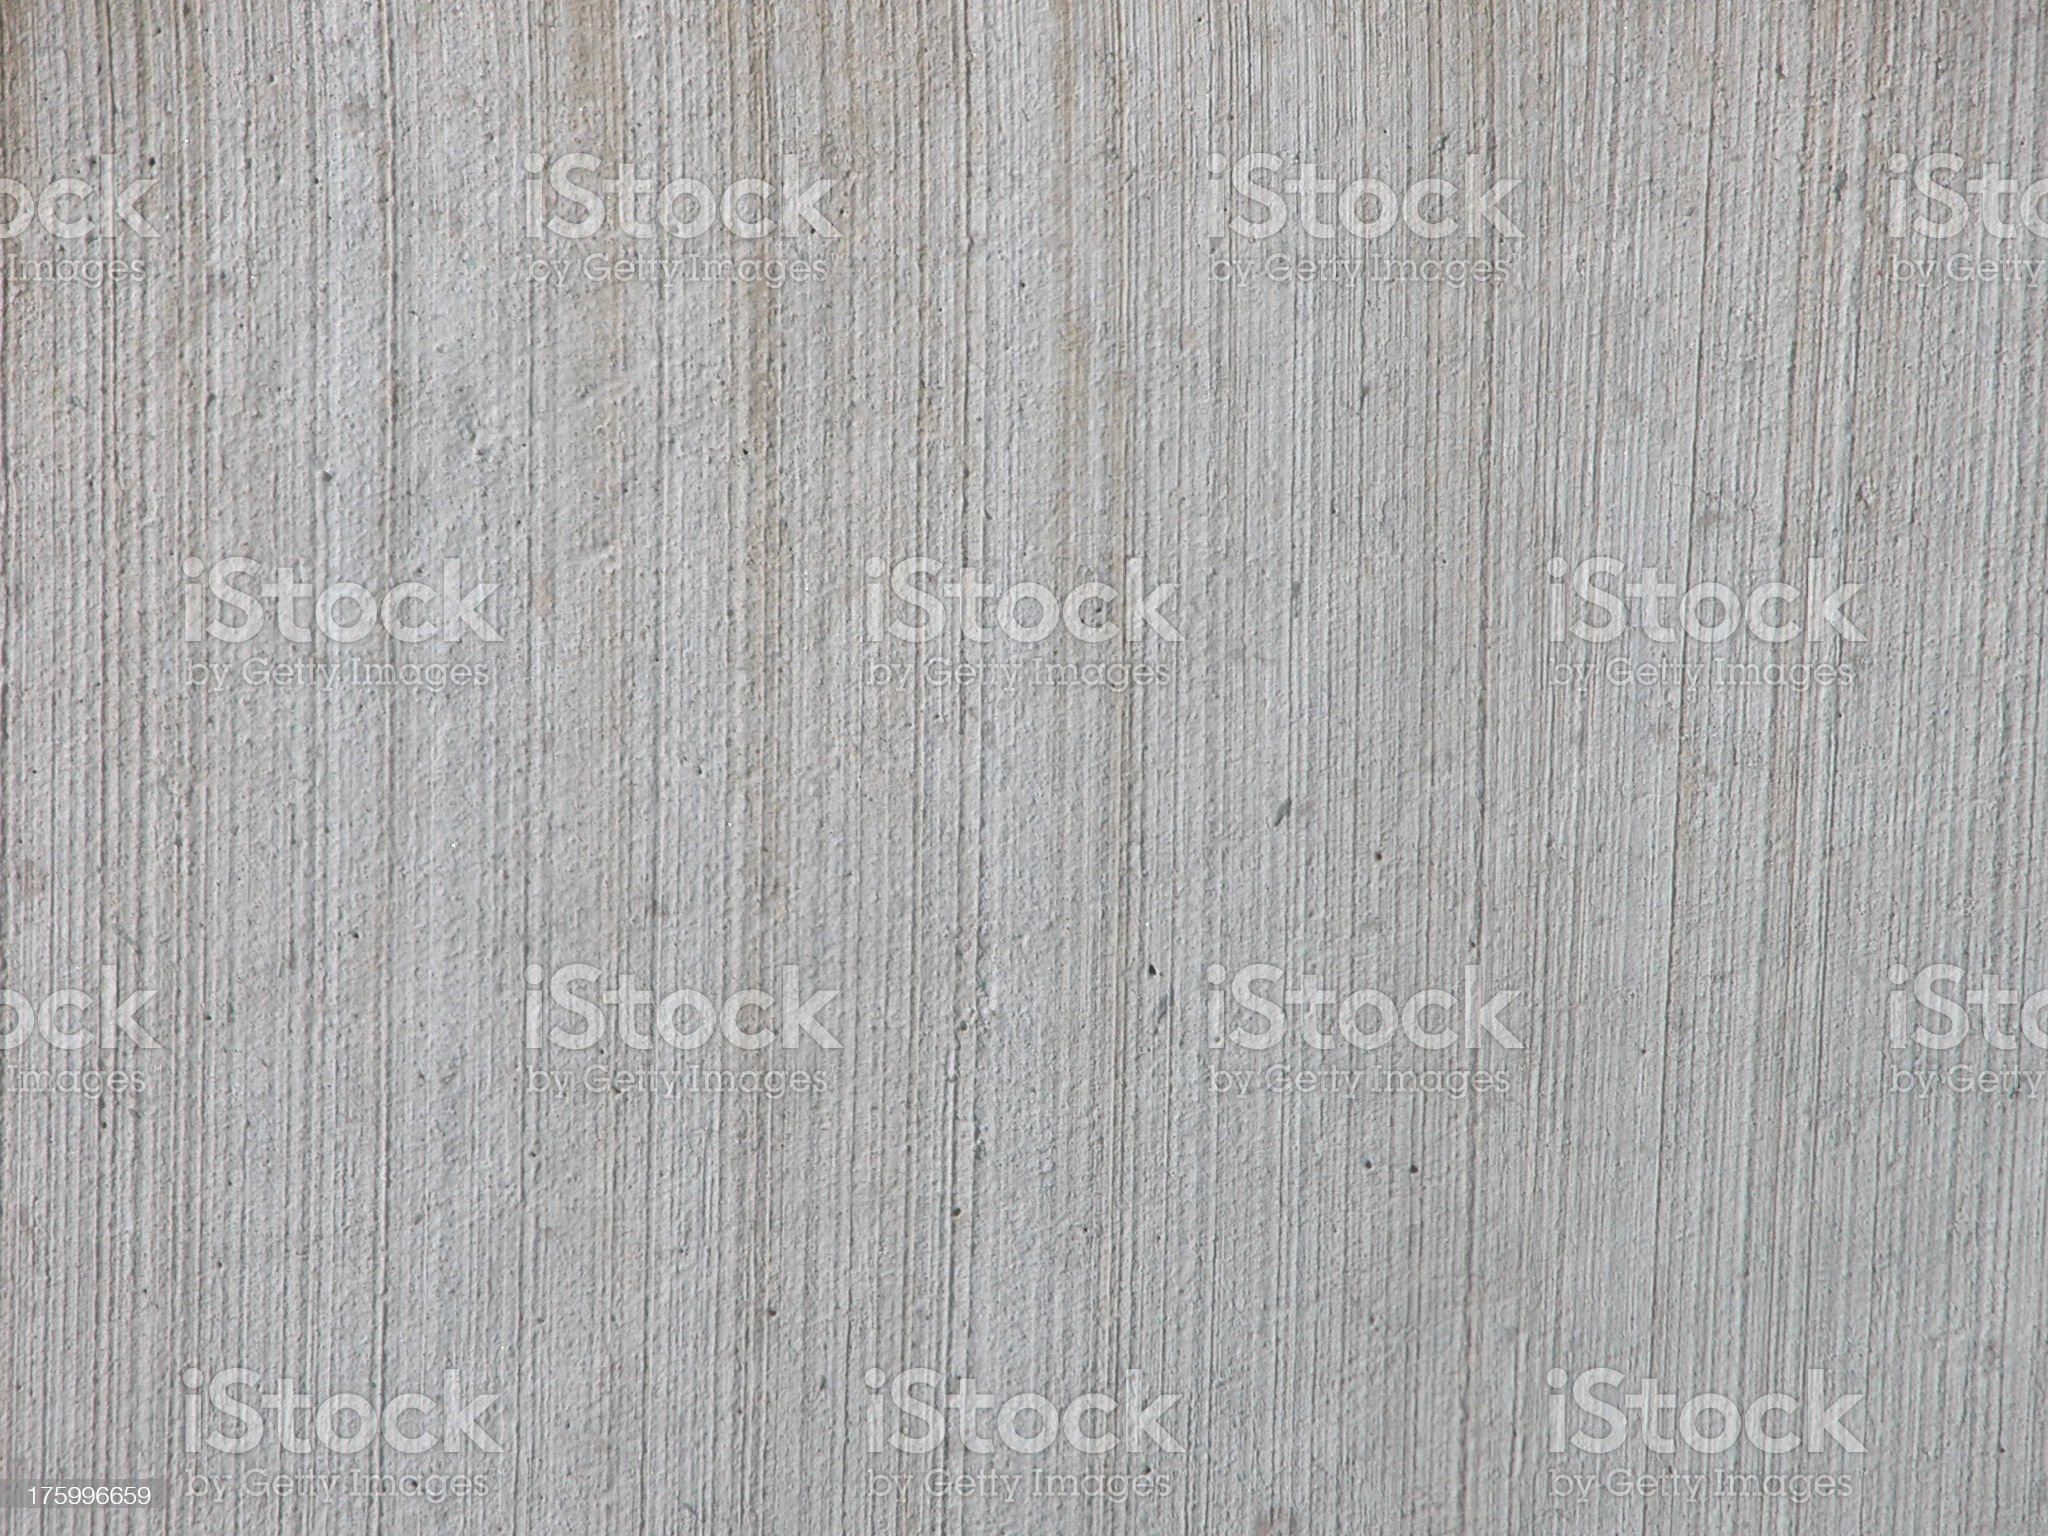 Finished Concrete Texture royalty-free stock photo